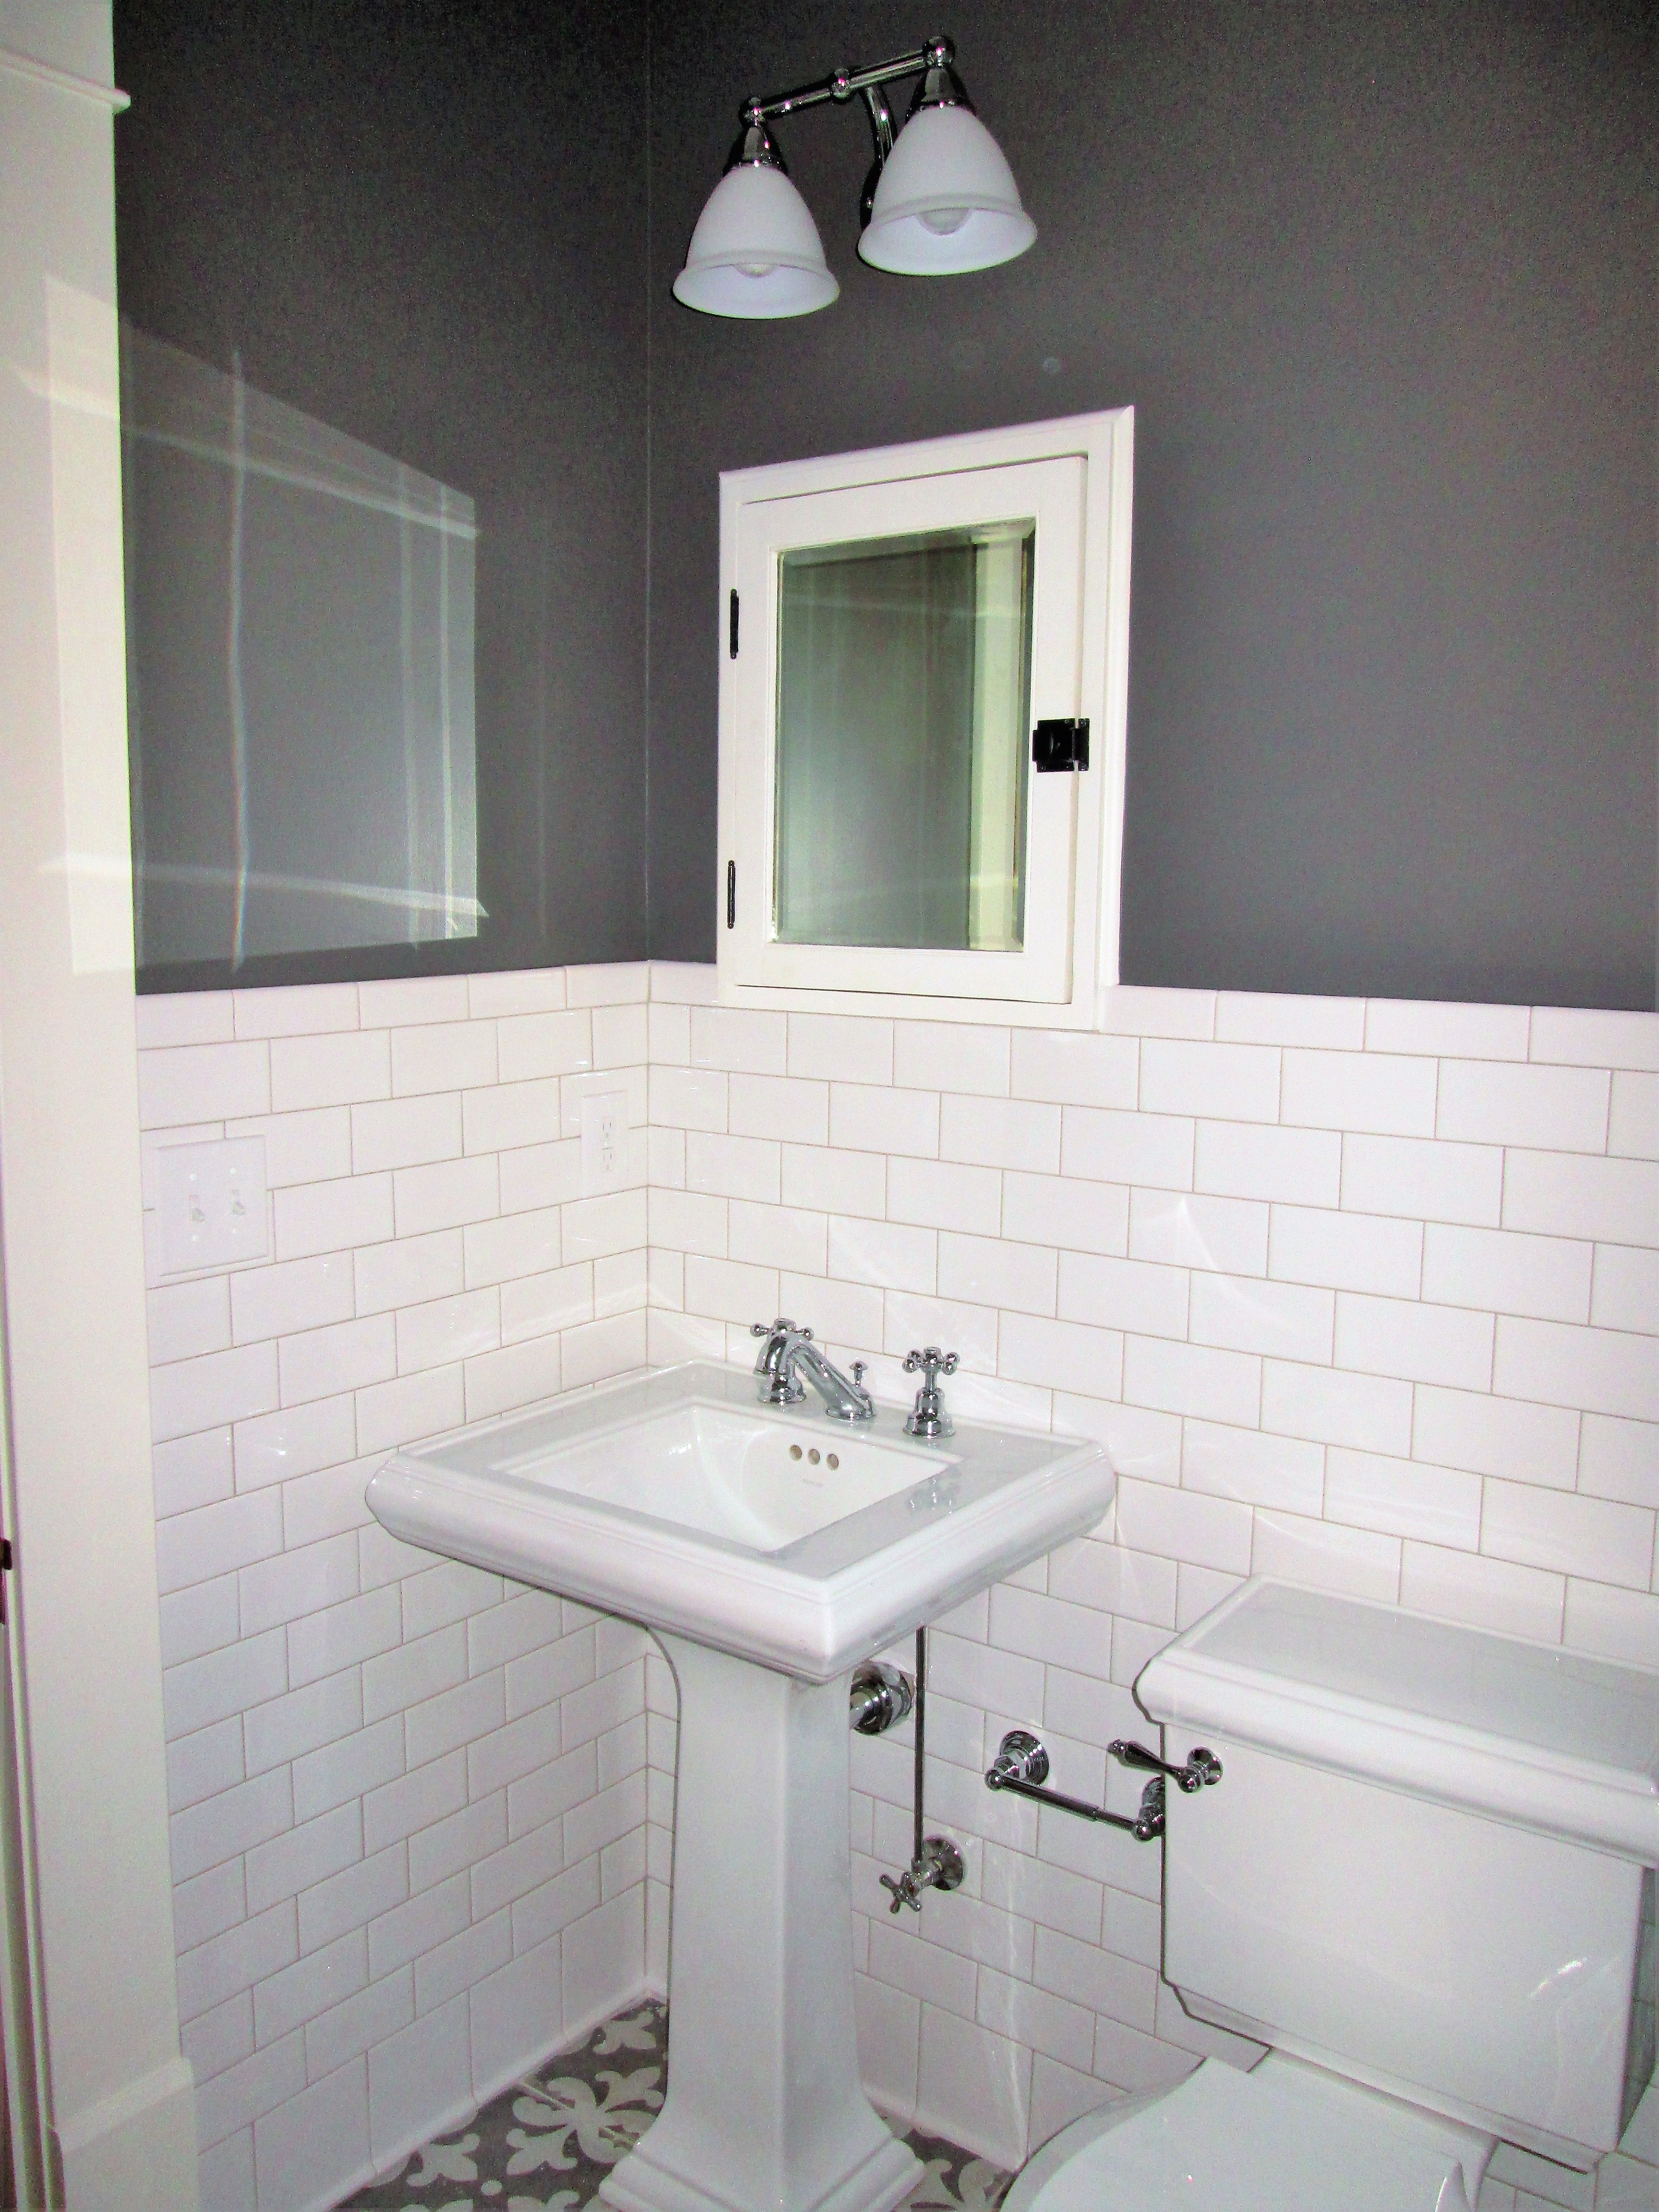 Small bath remodel in gray and white with pedestal sink inset ...